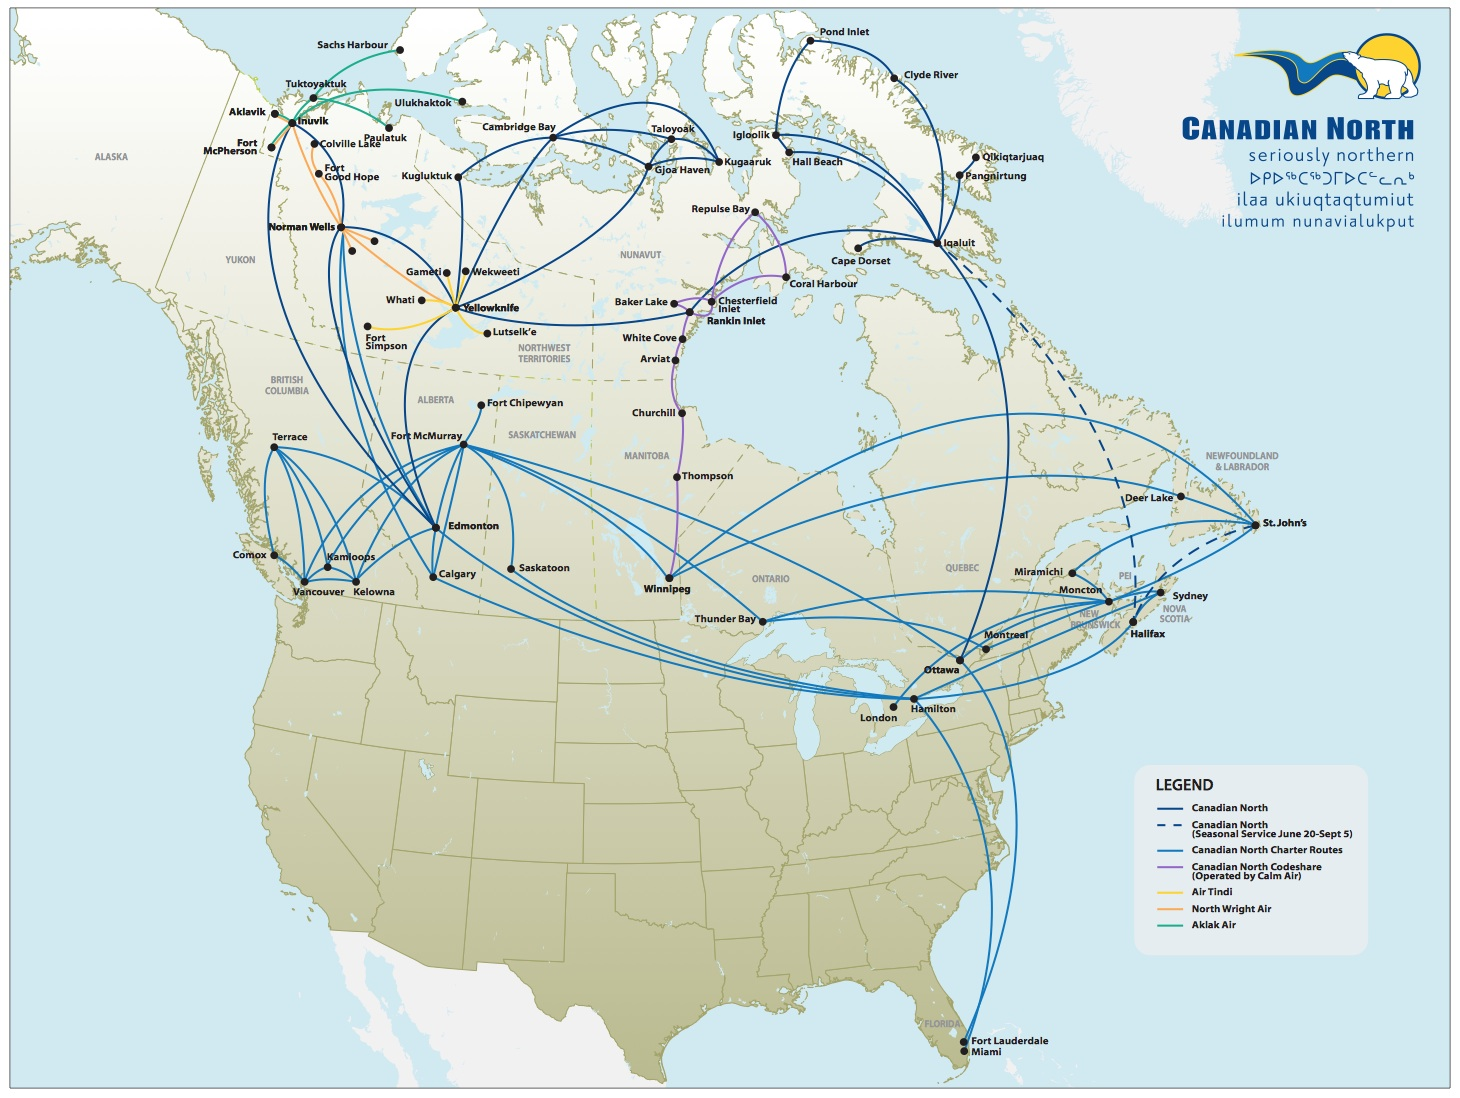 canadian-north-4-2014-route-map Airline Route Map Western Canada on northwest airlines route map, alitalia airlines route map, independence air route map, solomon airlines route map, hughes airwest route map, jackson airlines route map, wright airlines route map, twa route map, american airlines route map, alaska airlines route map, empire airlines route map, rocky mountain airways route map, air florida route map, united airlines route map, atlantic coast airlines route map, continental airlines route map, saudi arabian airlines route map, eastern airlines route map, golden west airlines route map,